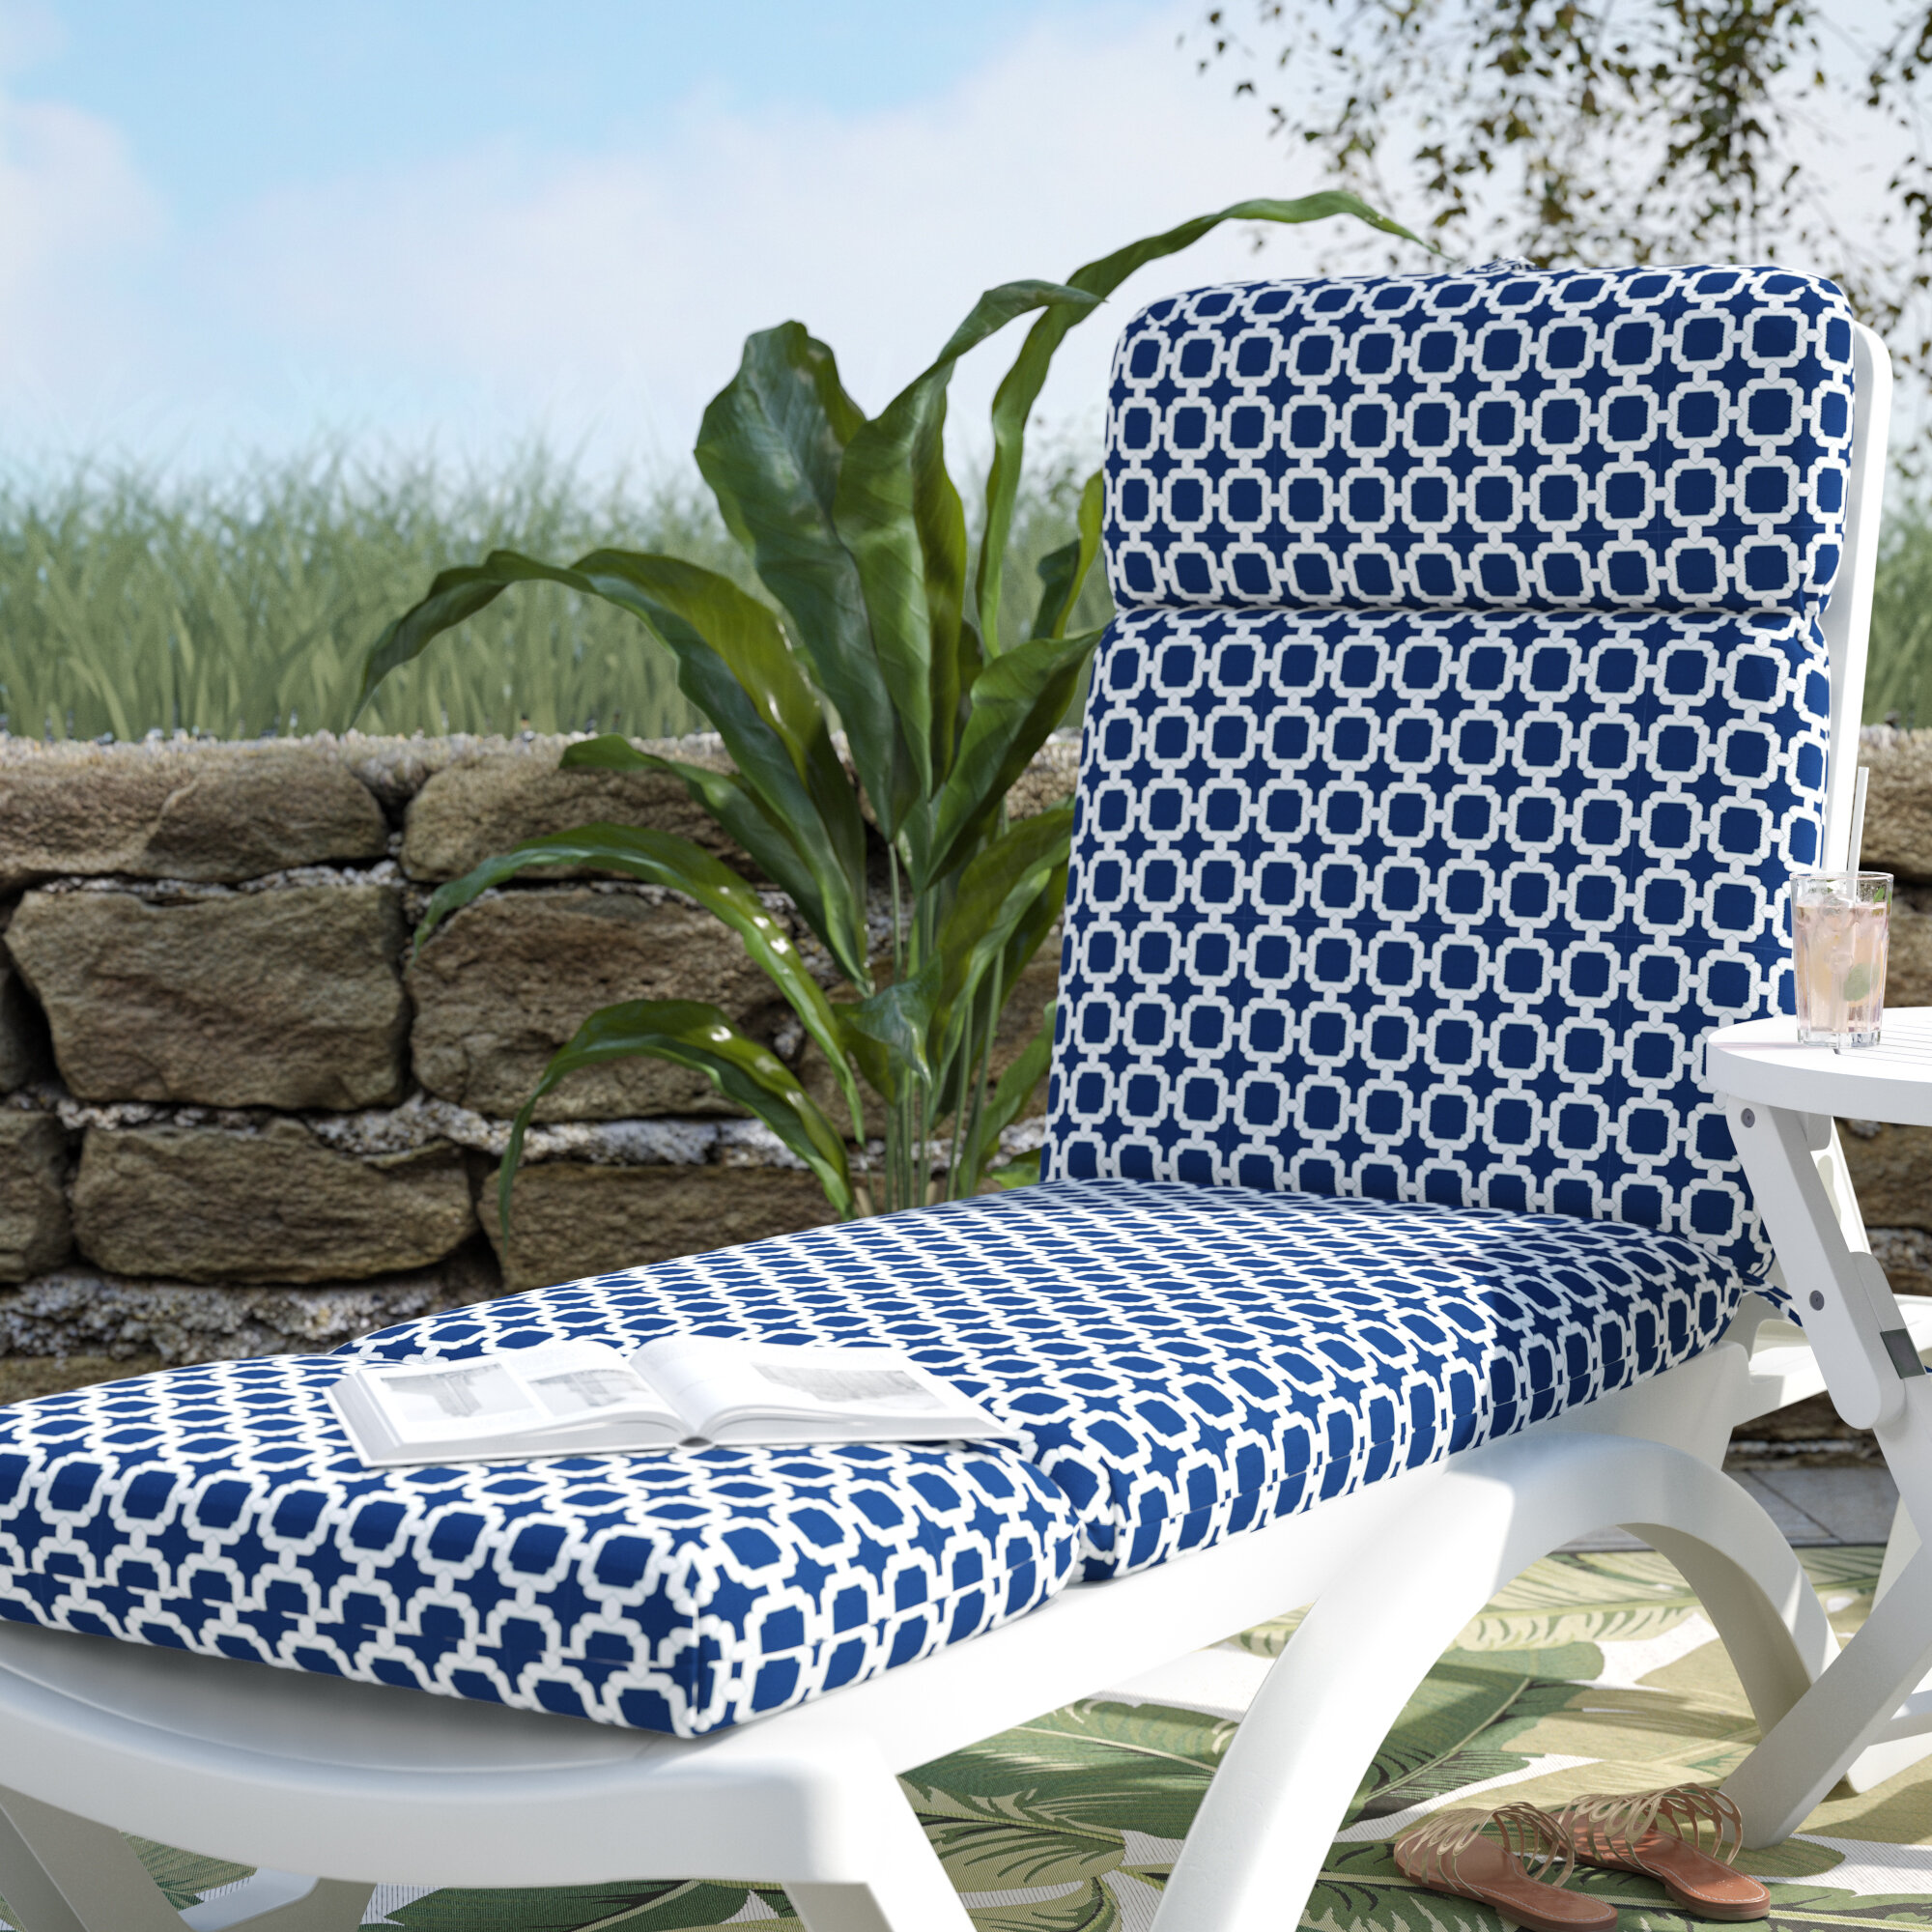 chaise lounge beach cushion towel cover covers chair with